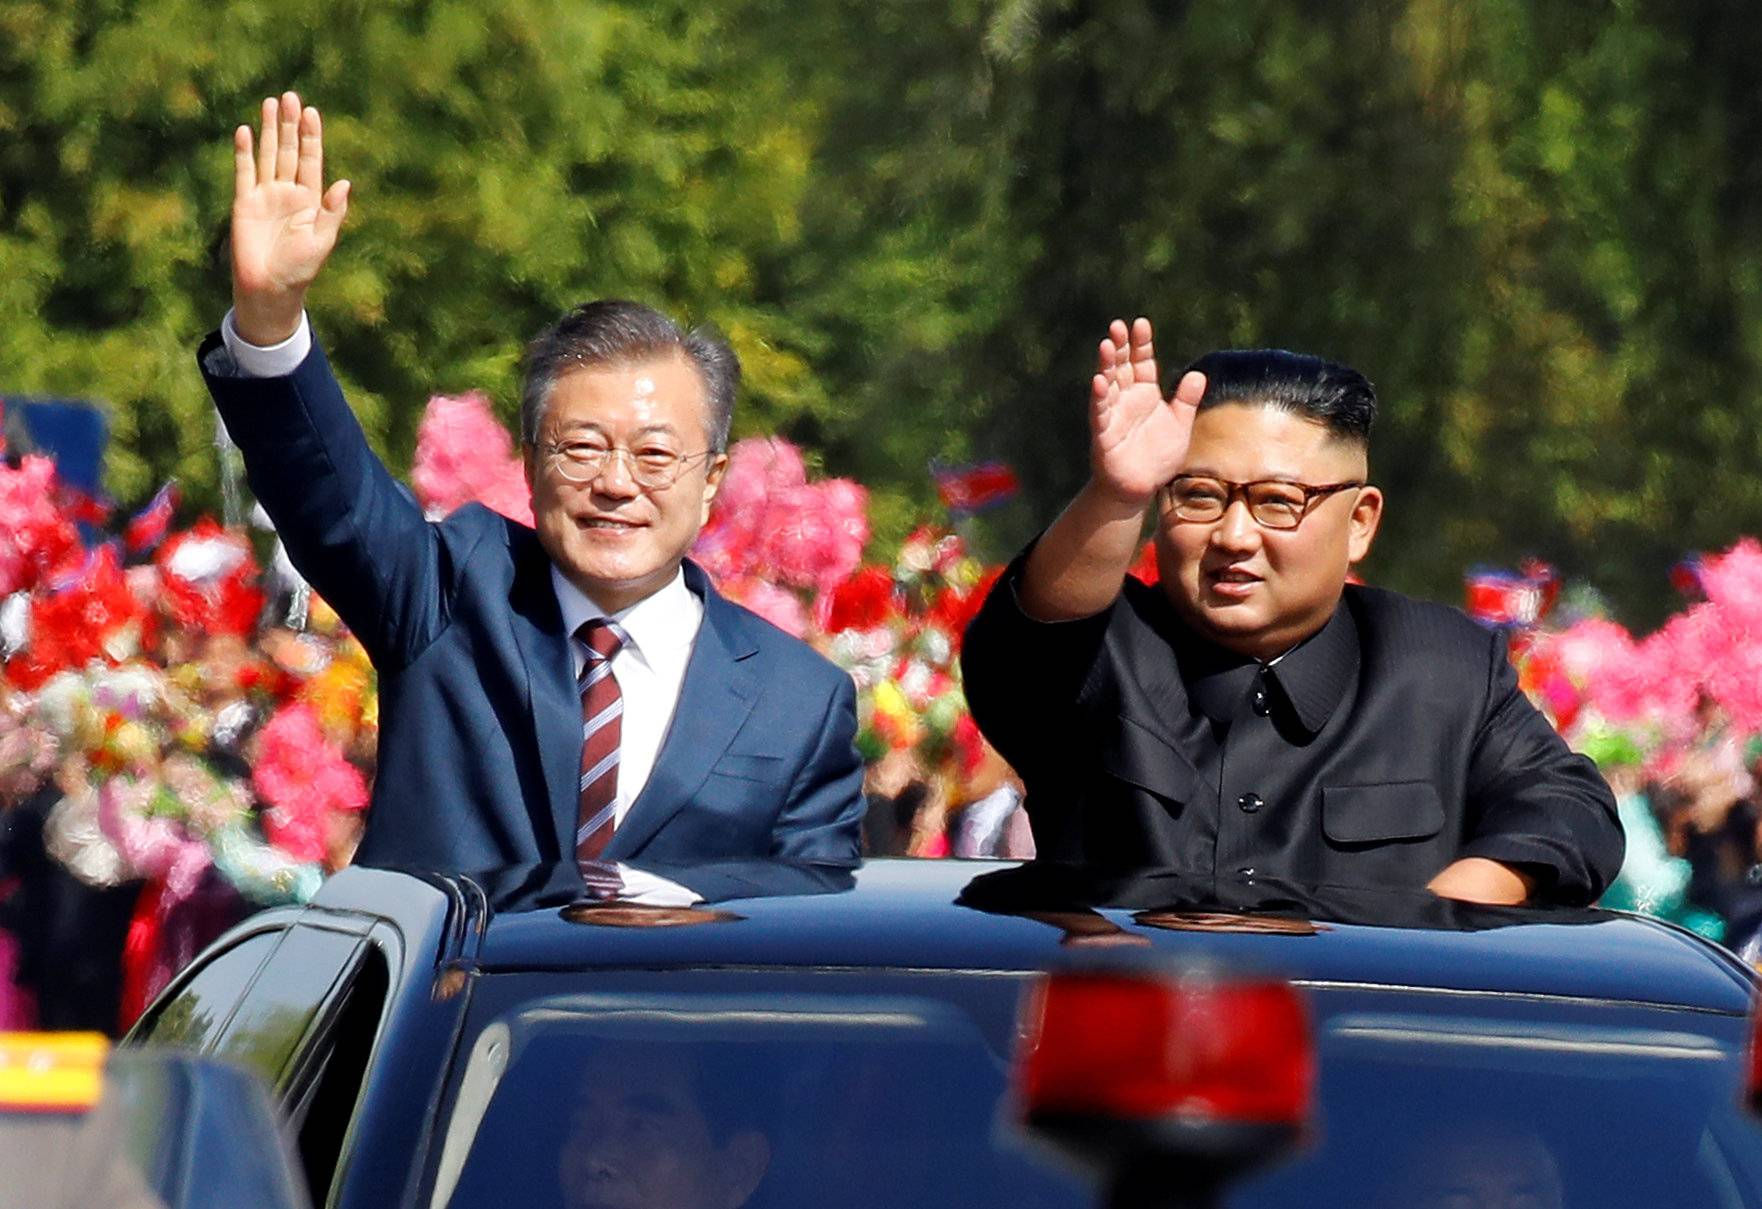 South Korean President Moon Jae-in and North Korean leader Kim Jong Un wave during a car parade in Pyongyang